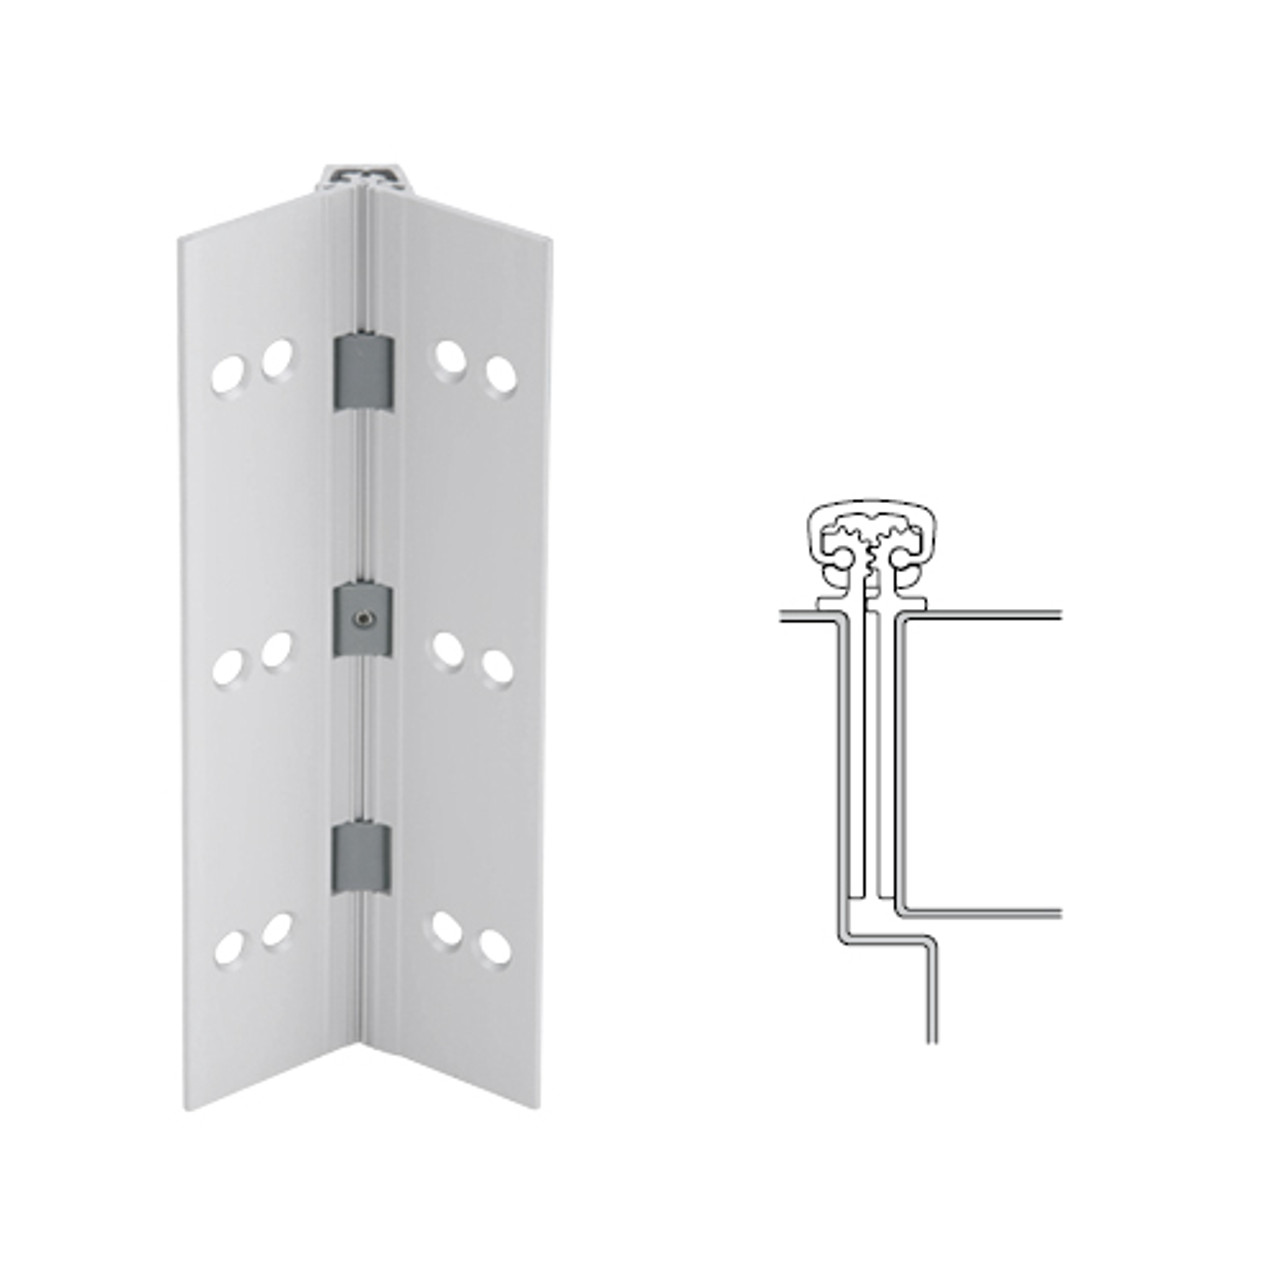 027XY-US28-83-SECWDHM IVES Full Mortise Continuous Geared Hinges with Security Screws - Hex Pin Drive in Satin Aluminum